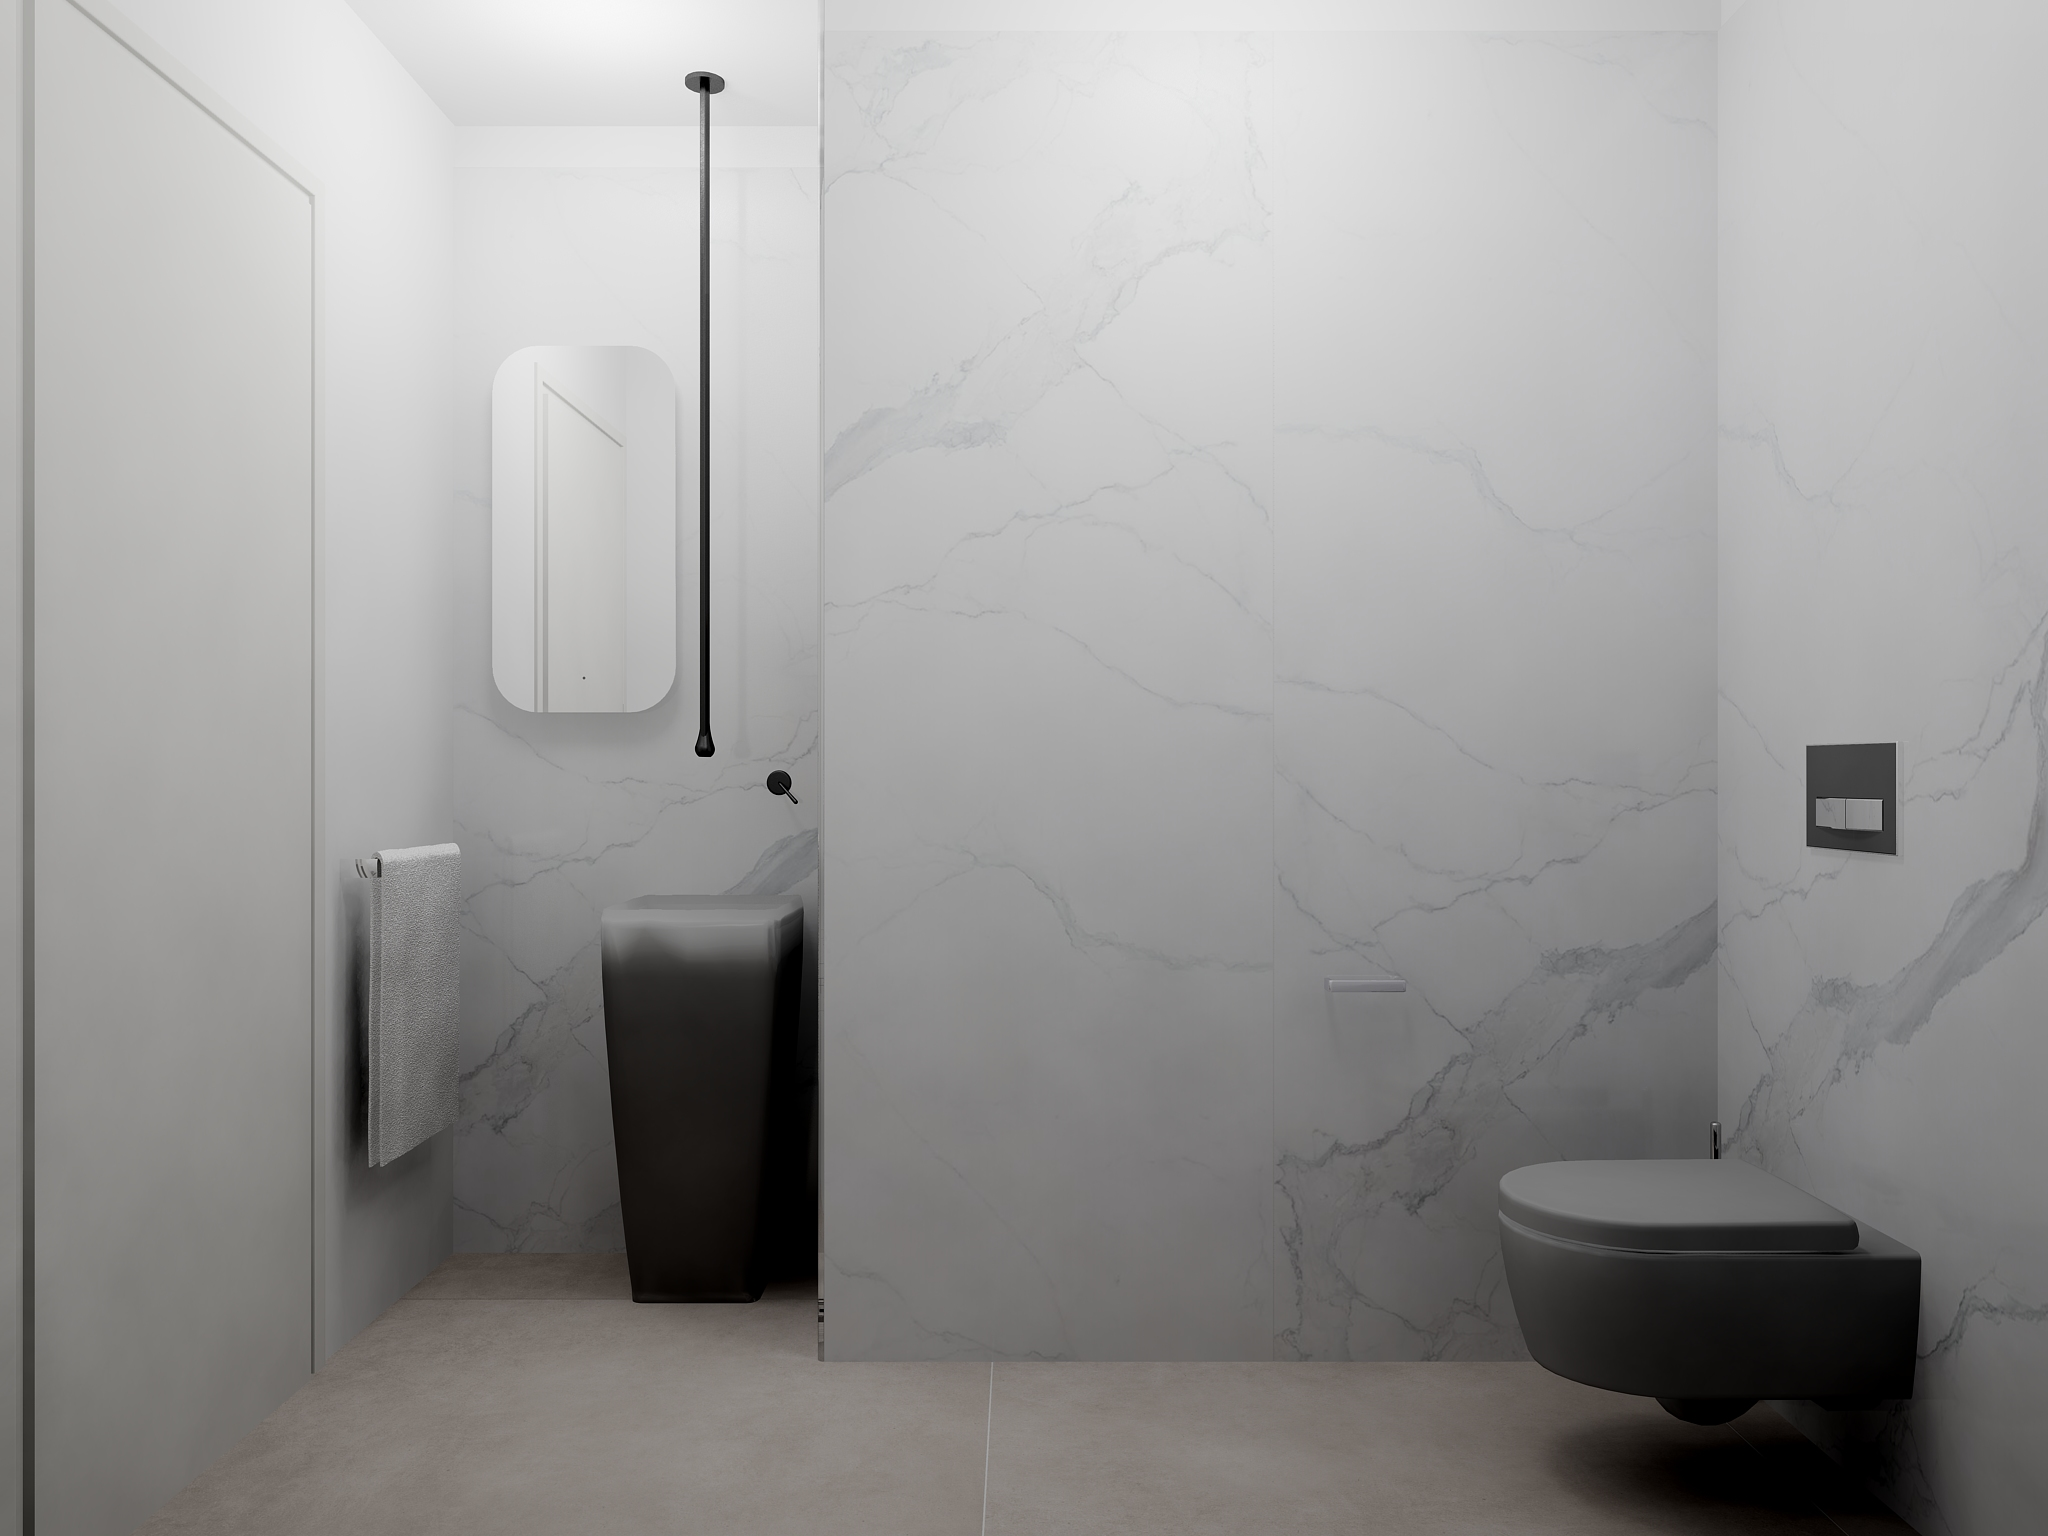 Mattout Carrelage WC INVITES V2 1 Bathroom By Mattout ...